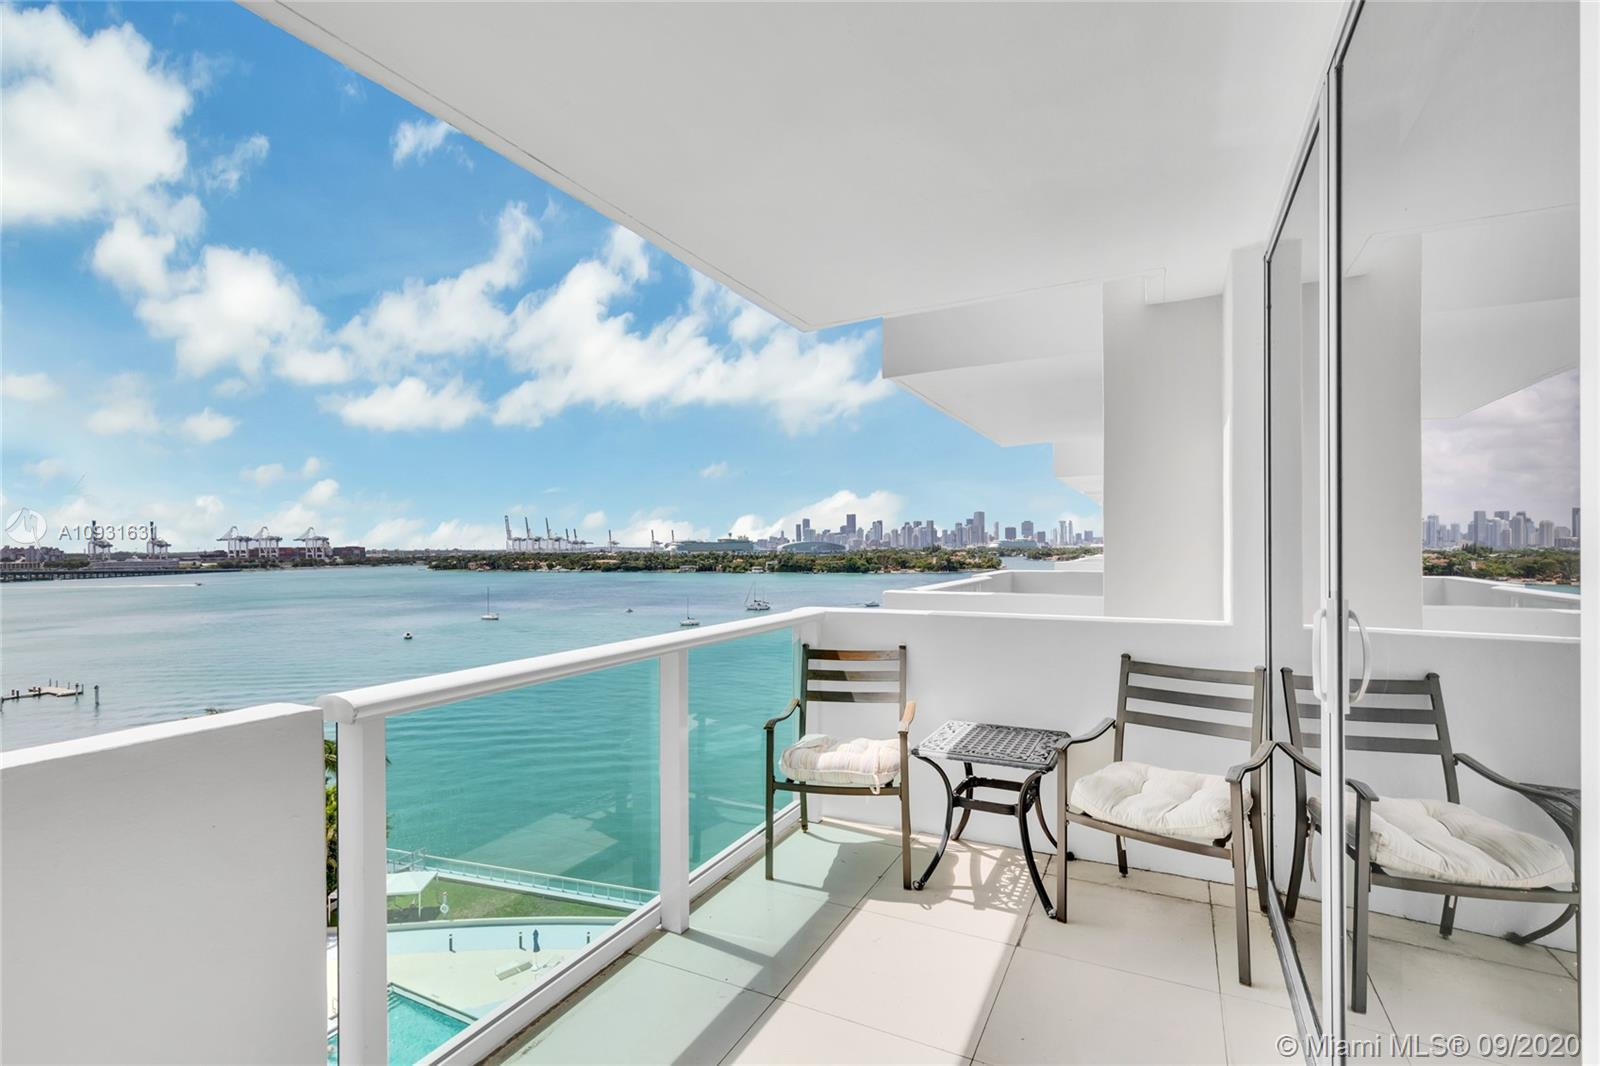 Enjoy beautiful water views in this remarkable updated unit at the Mirador. Owner just paid full spe